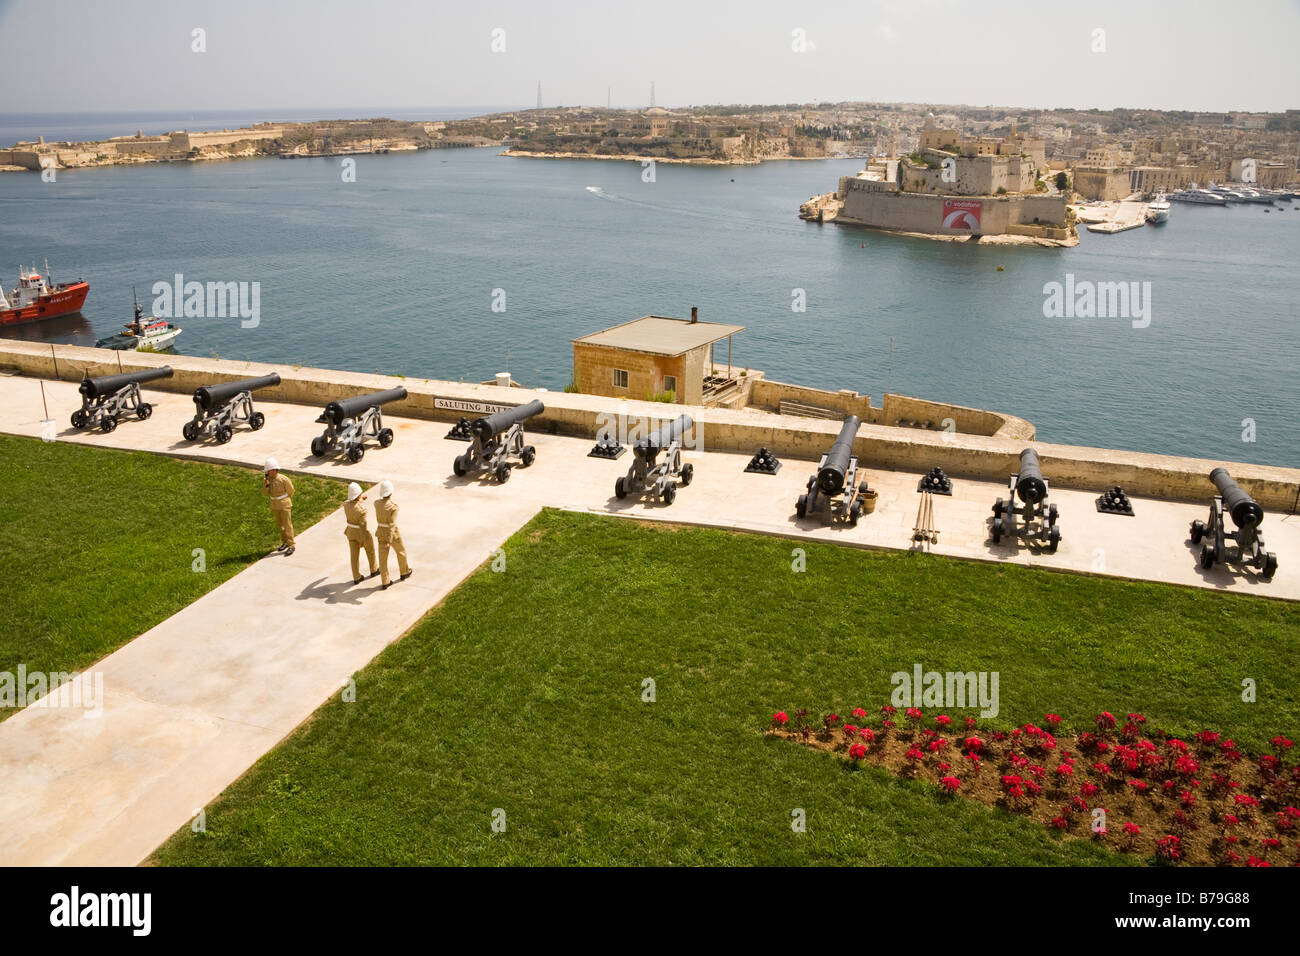 Soldiers and cannons at the Saluting Battery, and Grand Harbour, from Upper Barracca Gardens, Valletta, Malta - Stock Image